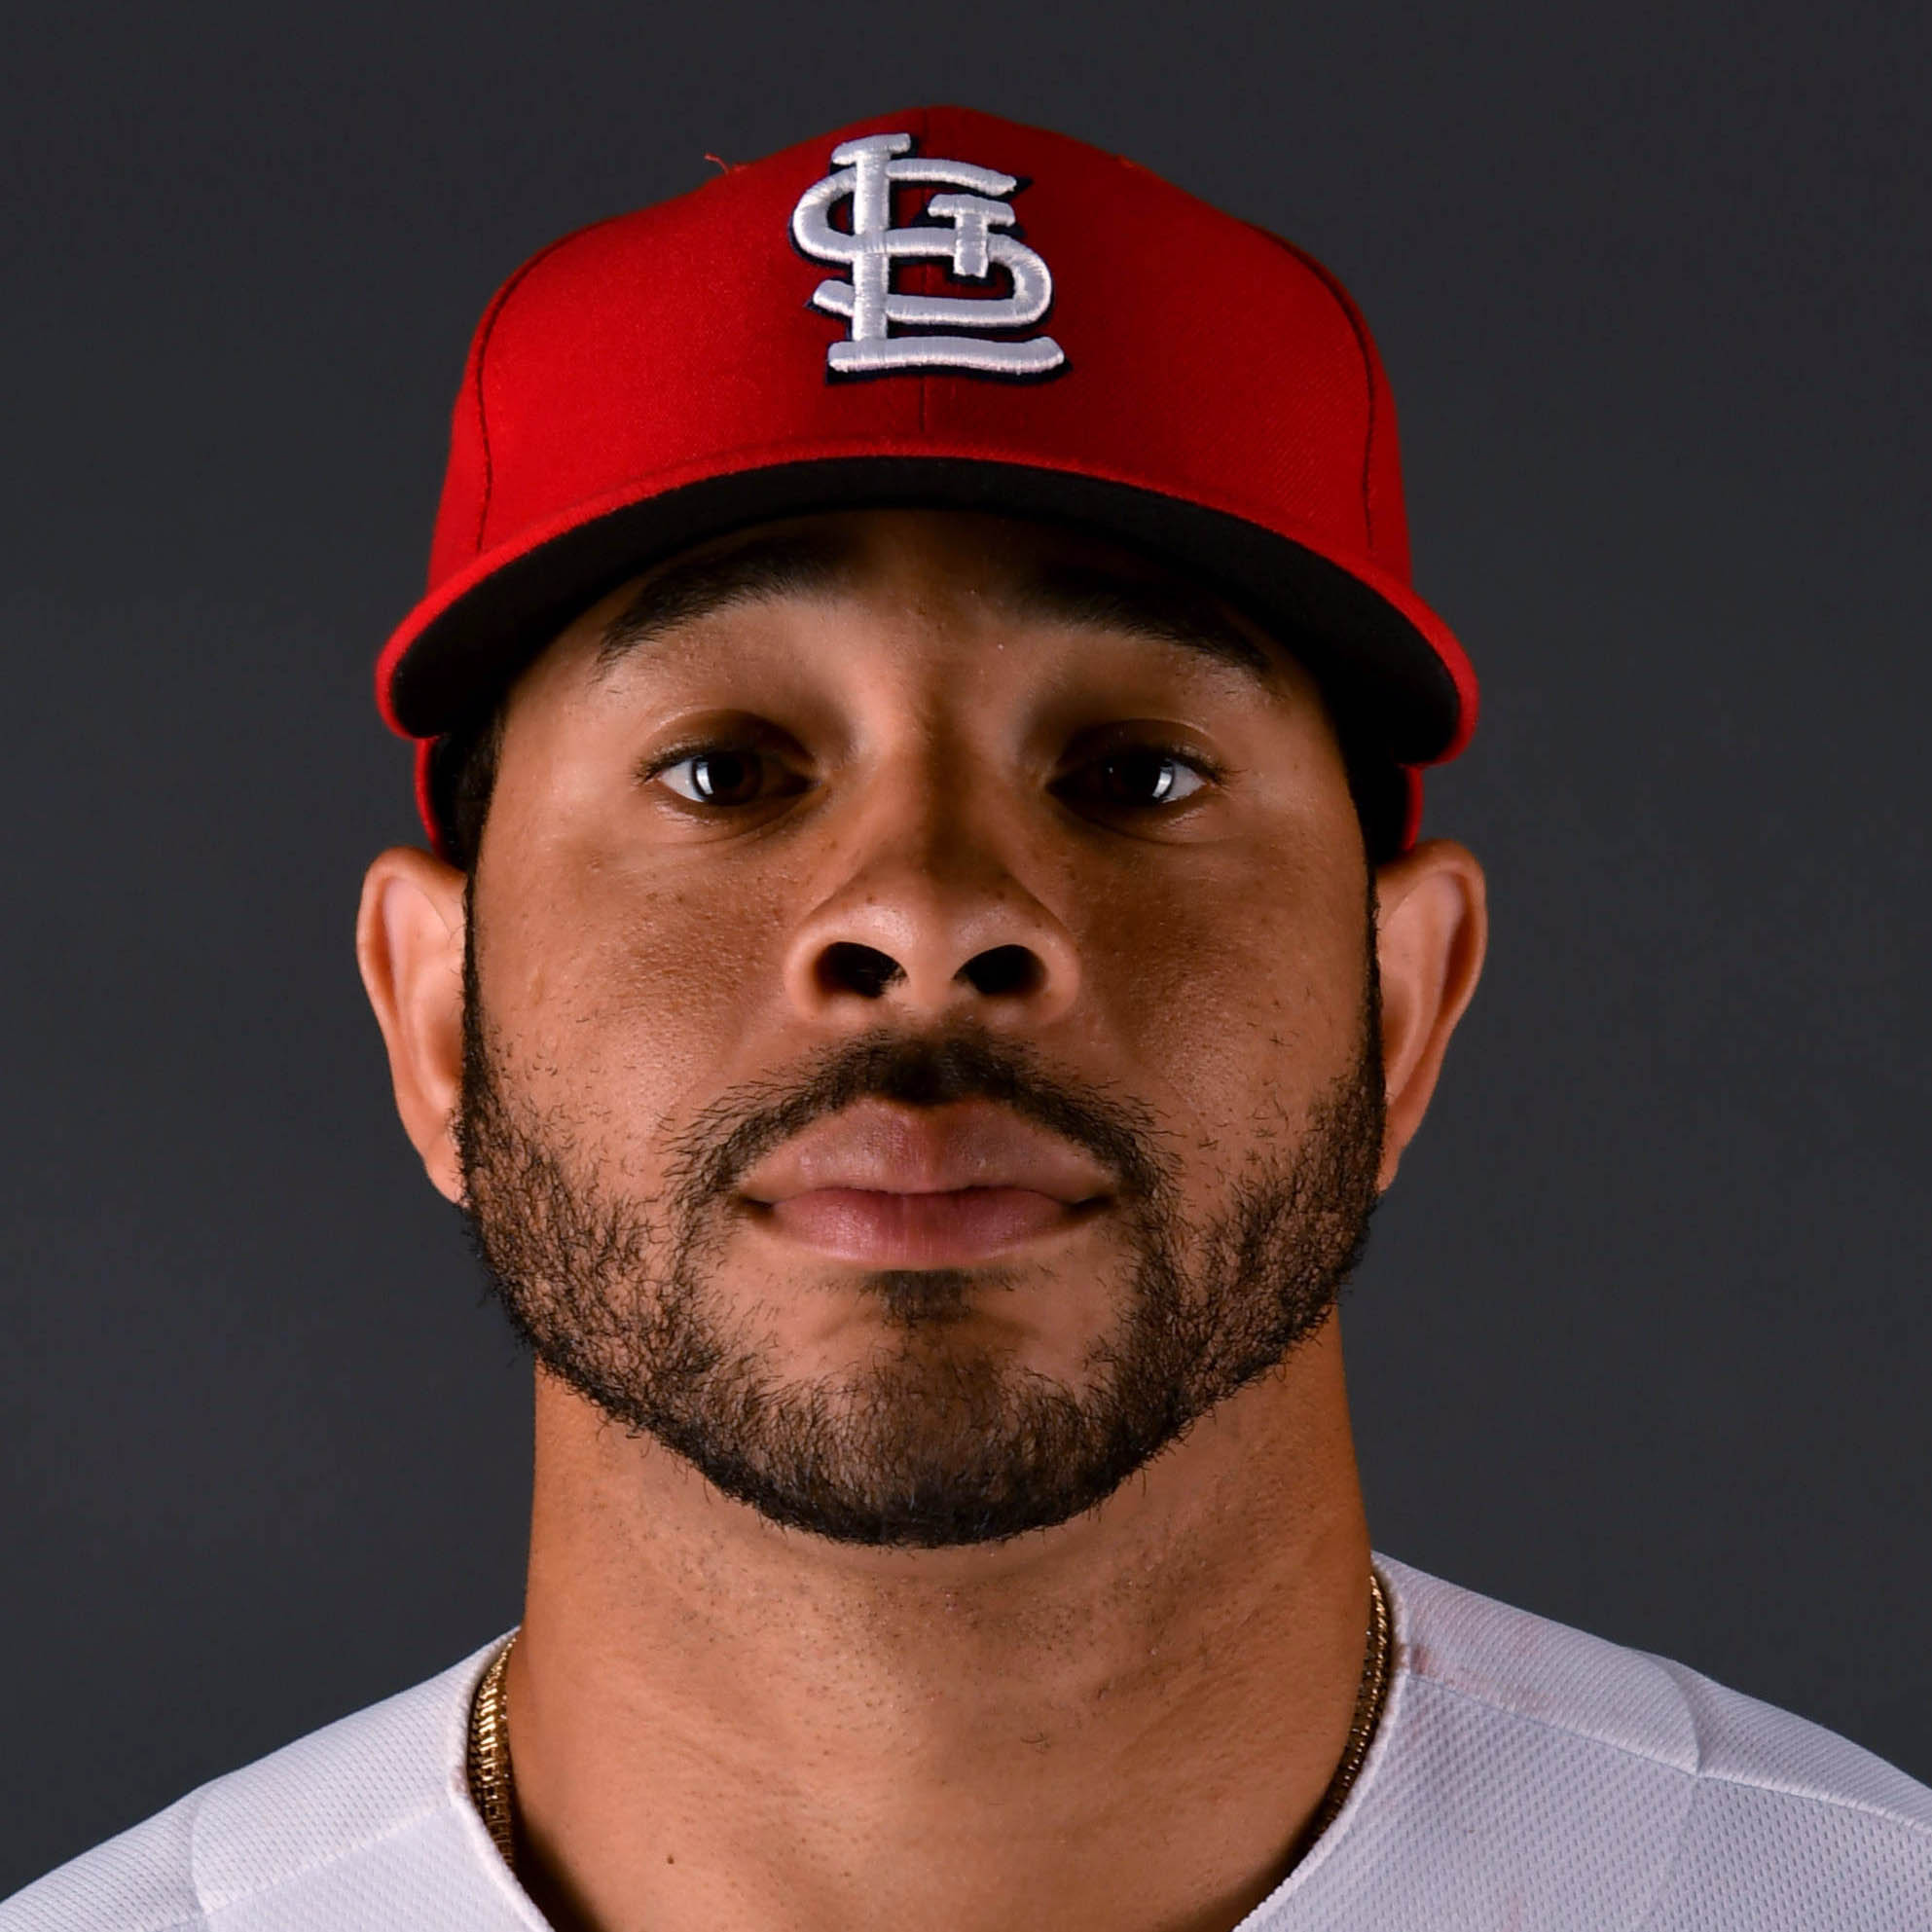 Tommy Pham (R) Headshot